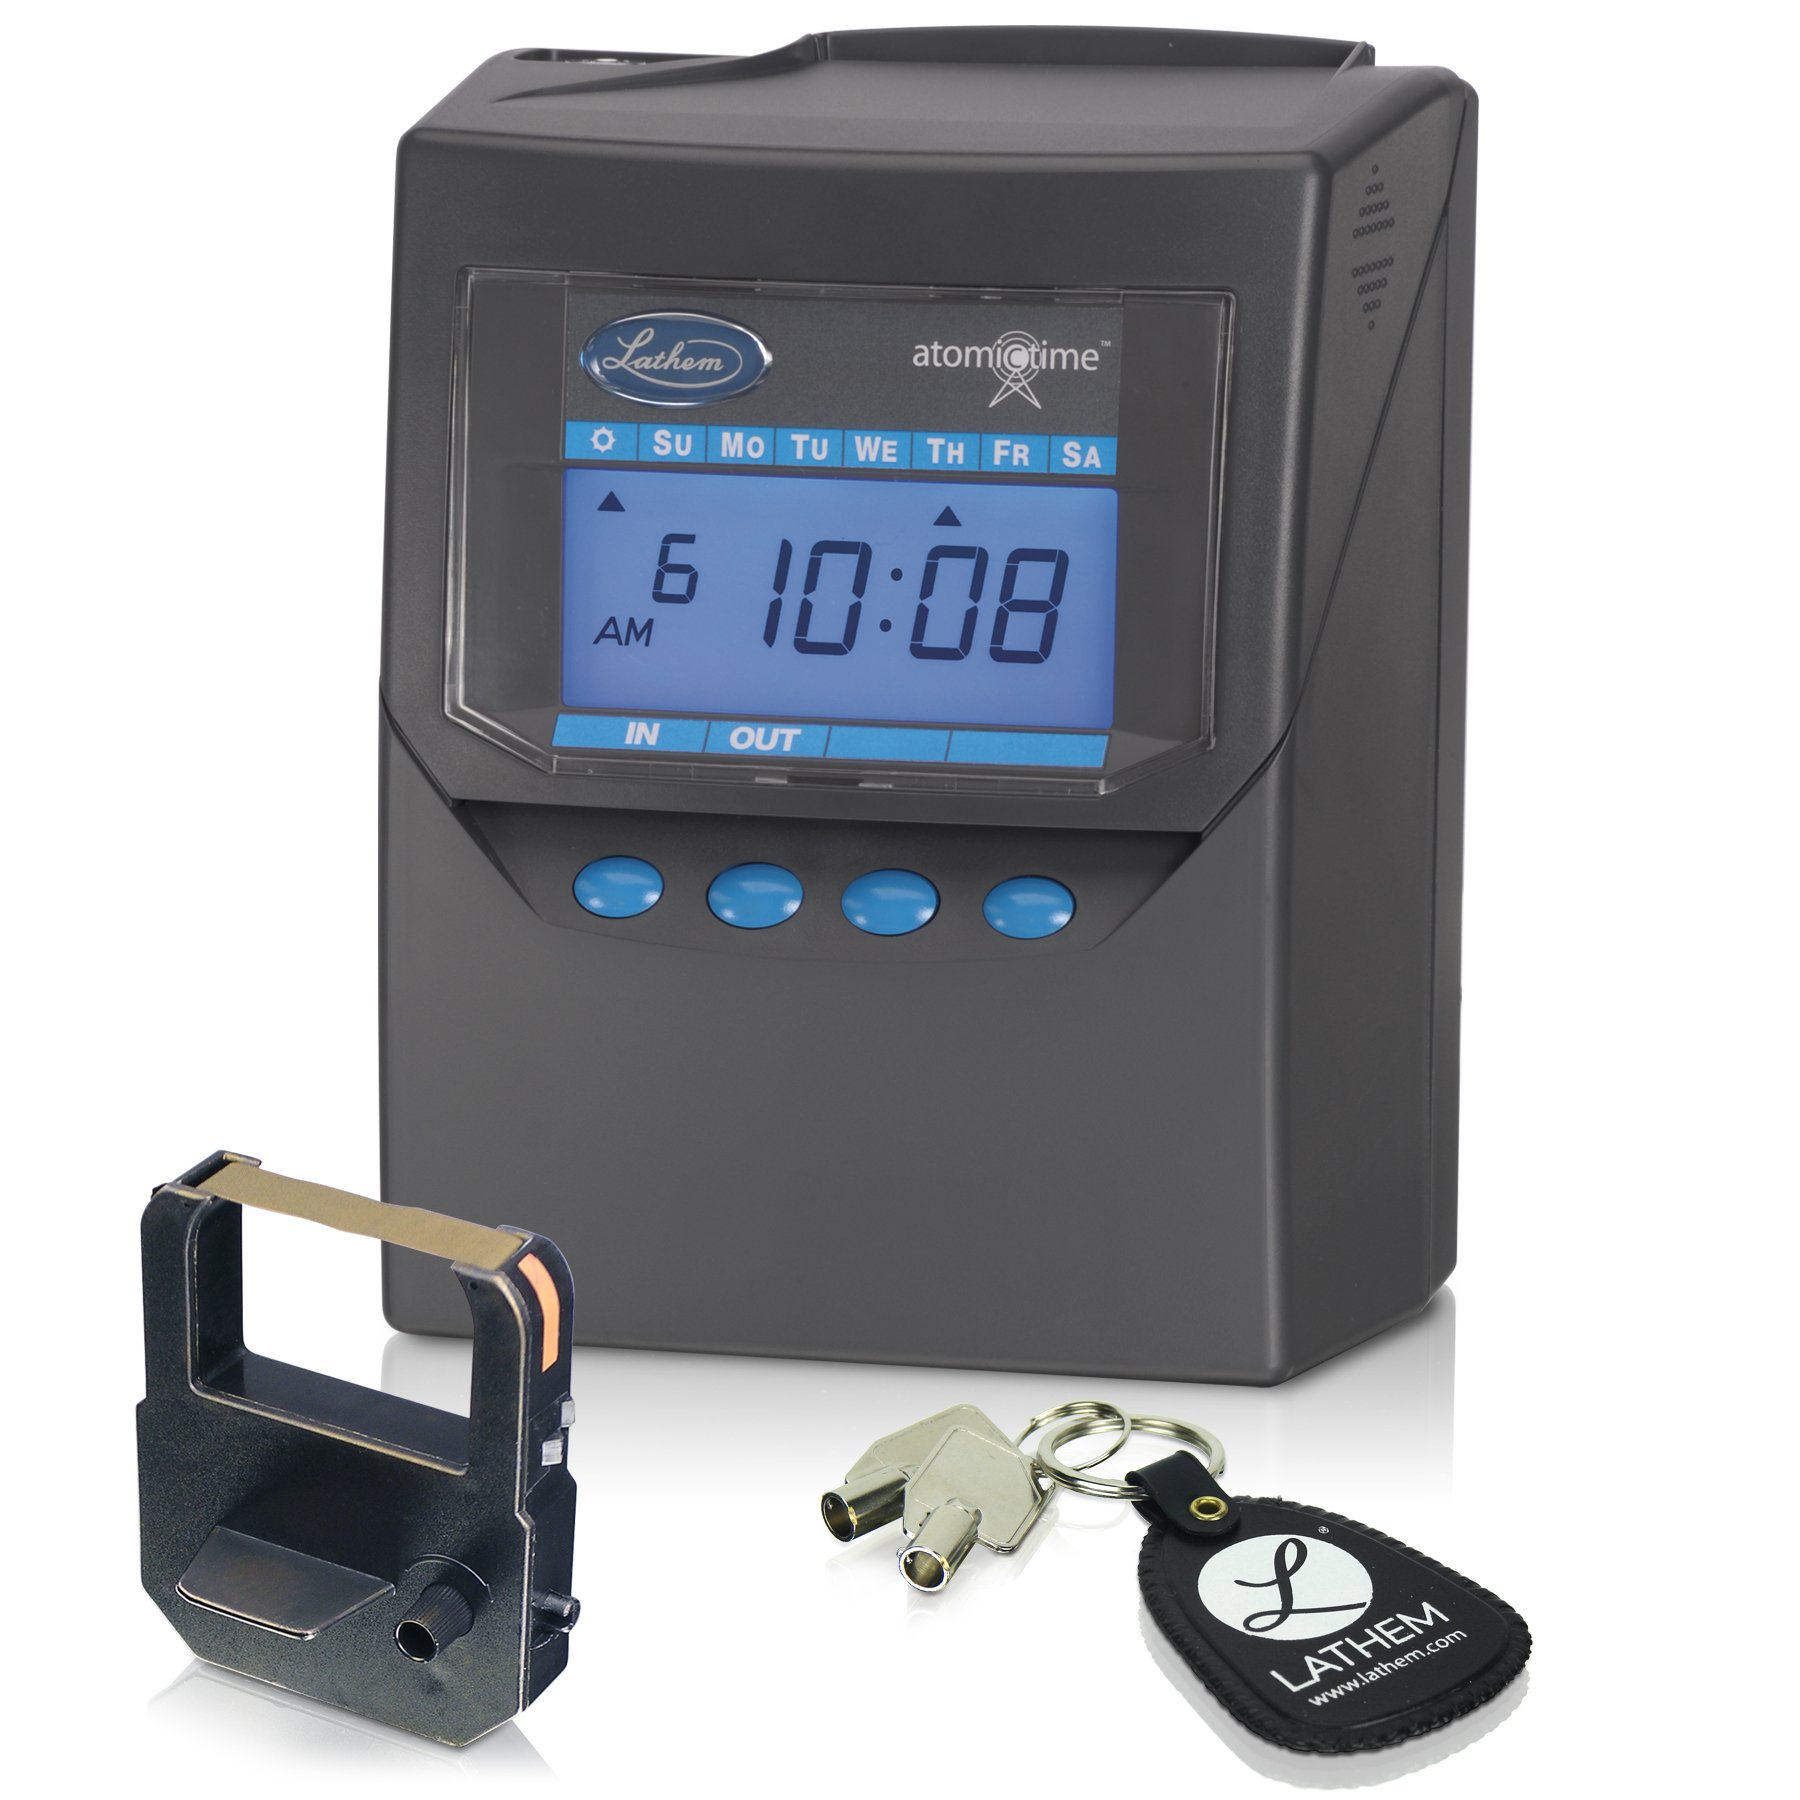 Lathem Calculating Atomic Time Clock, For 100 Employees, Includes Mounting Clip, Gray (7500E) by Lathem